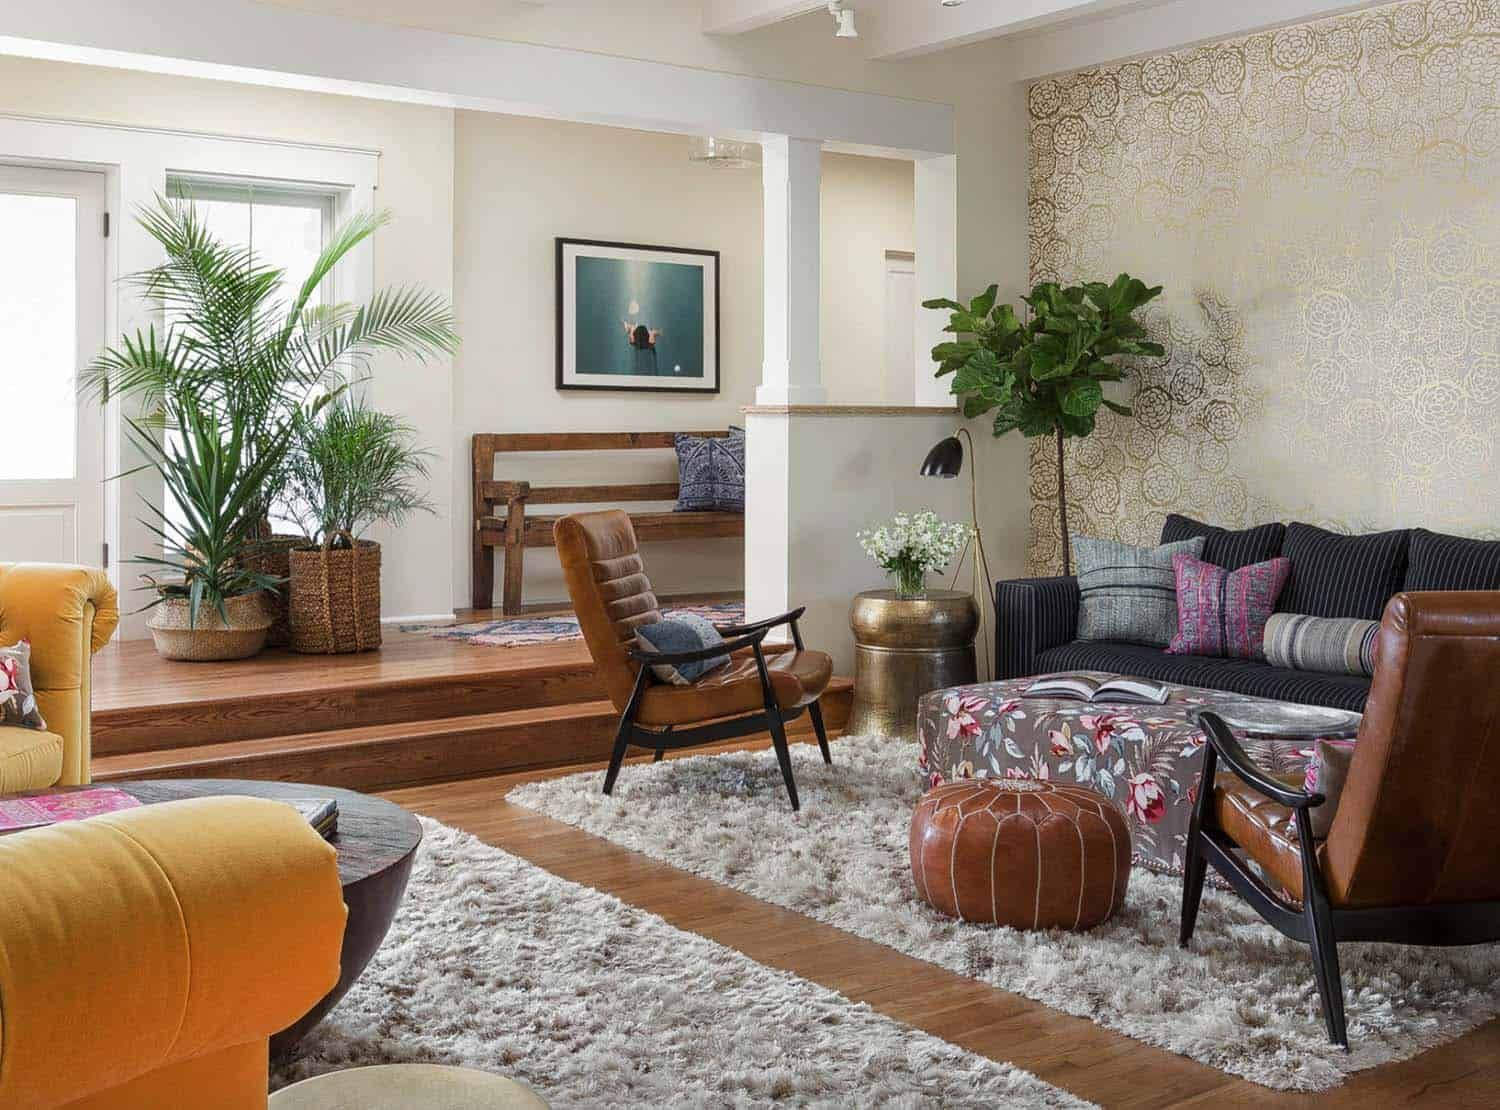 Room ideas we've tapped top interior designers to share their insider secrets, tips, and. Alluring modern-eclectic home with playful interiors in ...